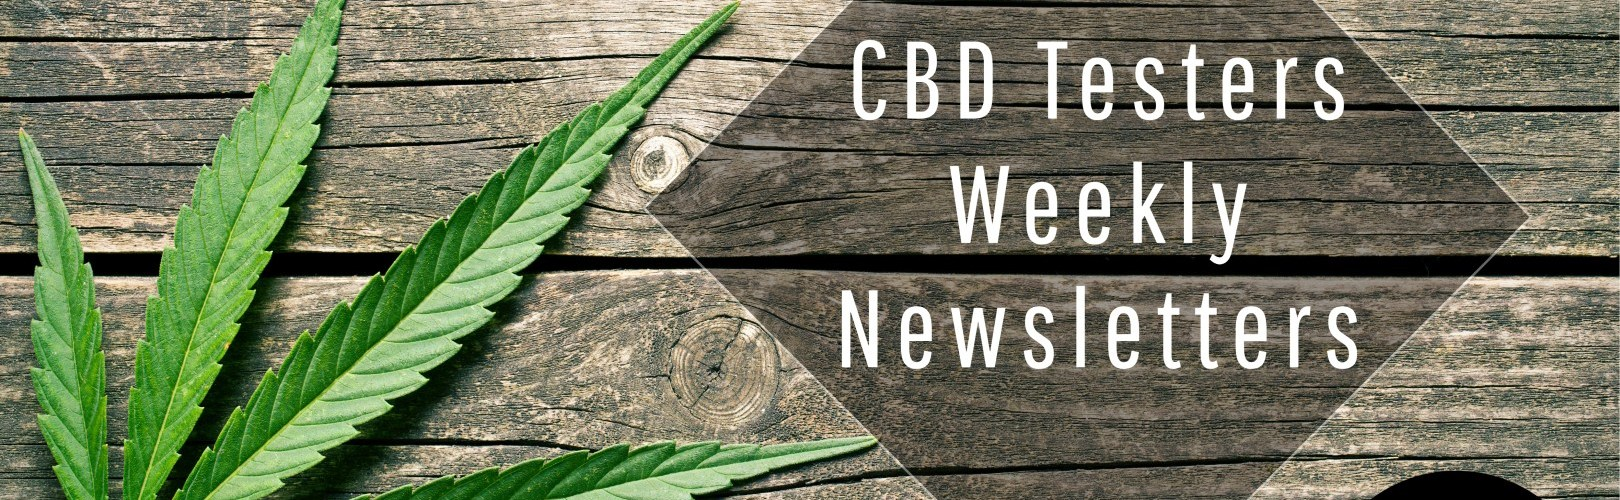 CBD Testers Weekly Newsletters